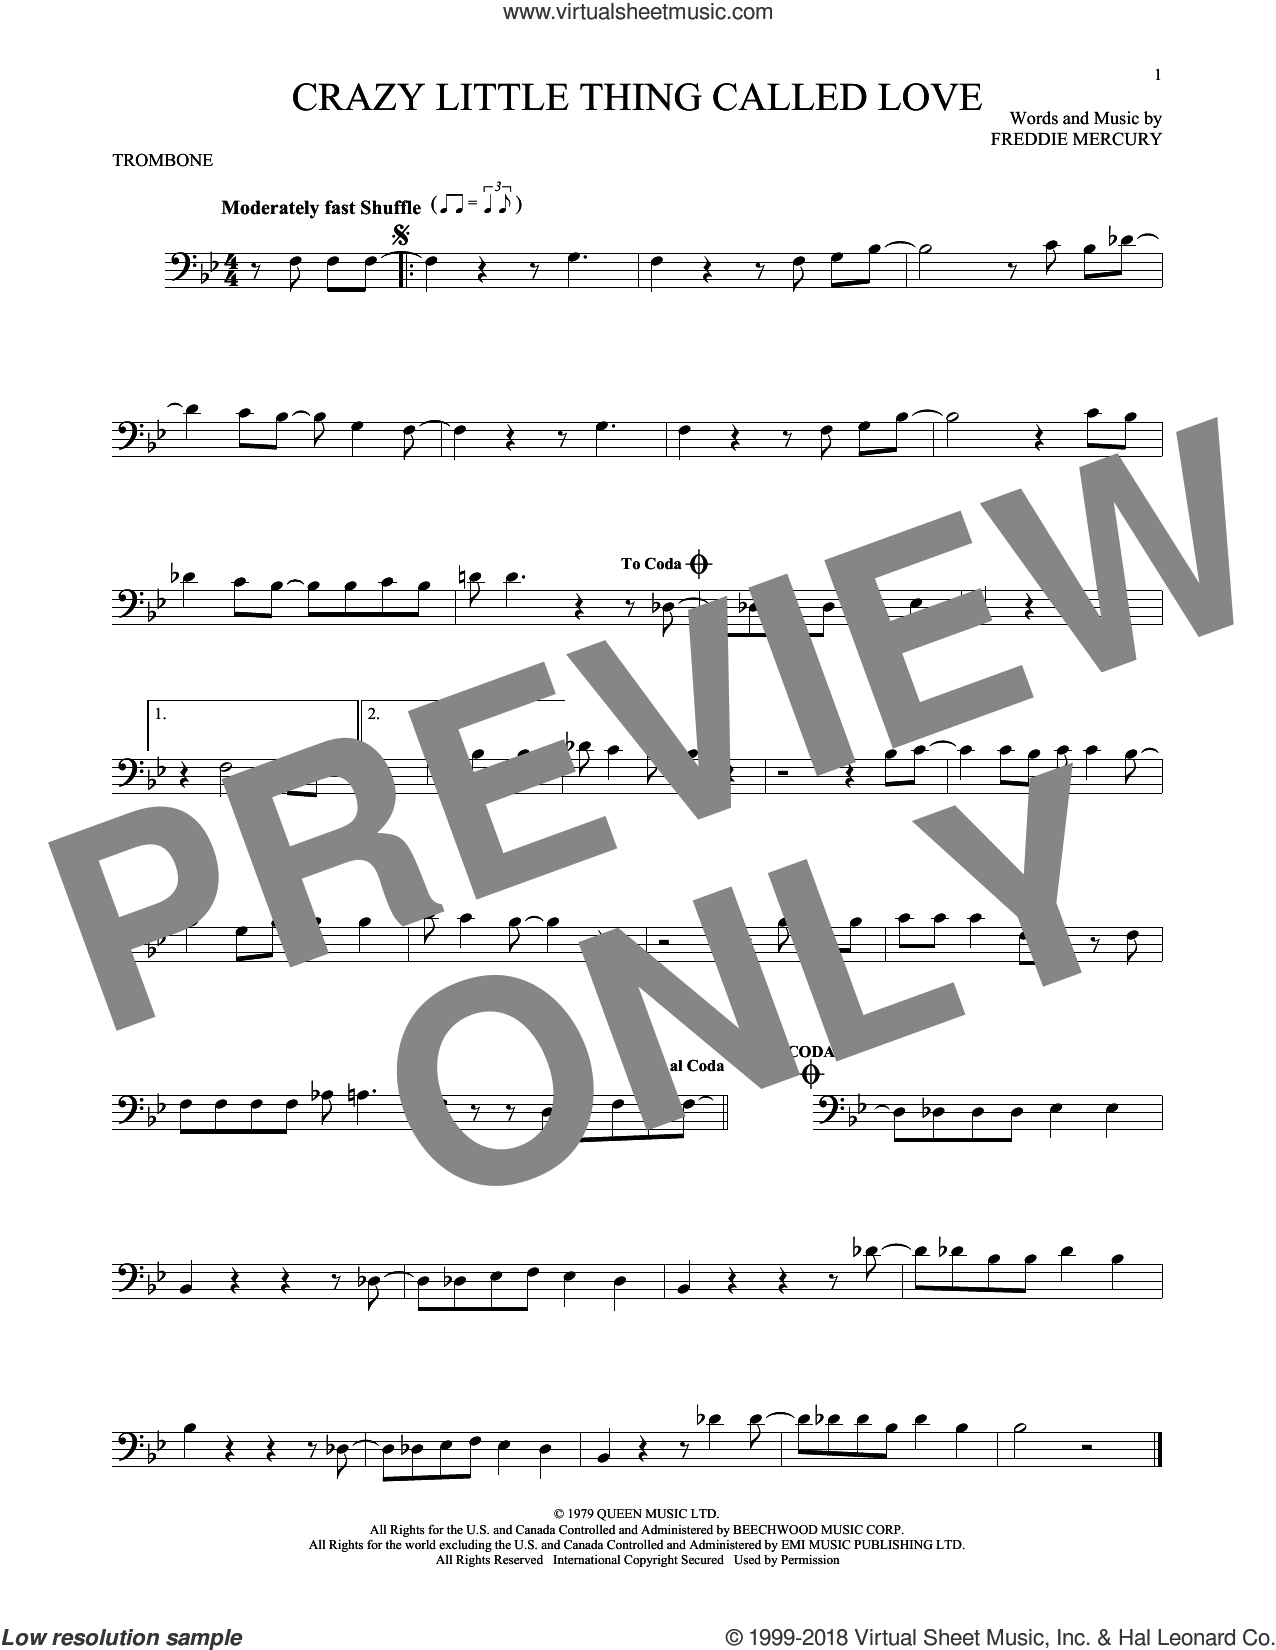 Crazy Little Thing Called Love sheet music for trombone solo by Freddie Mercury